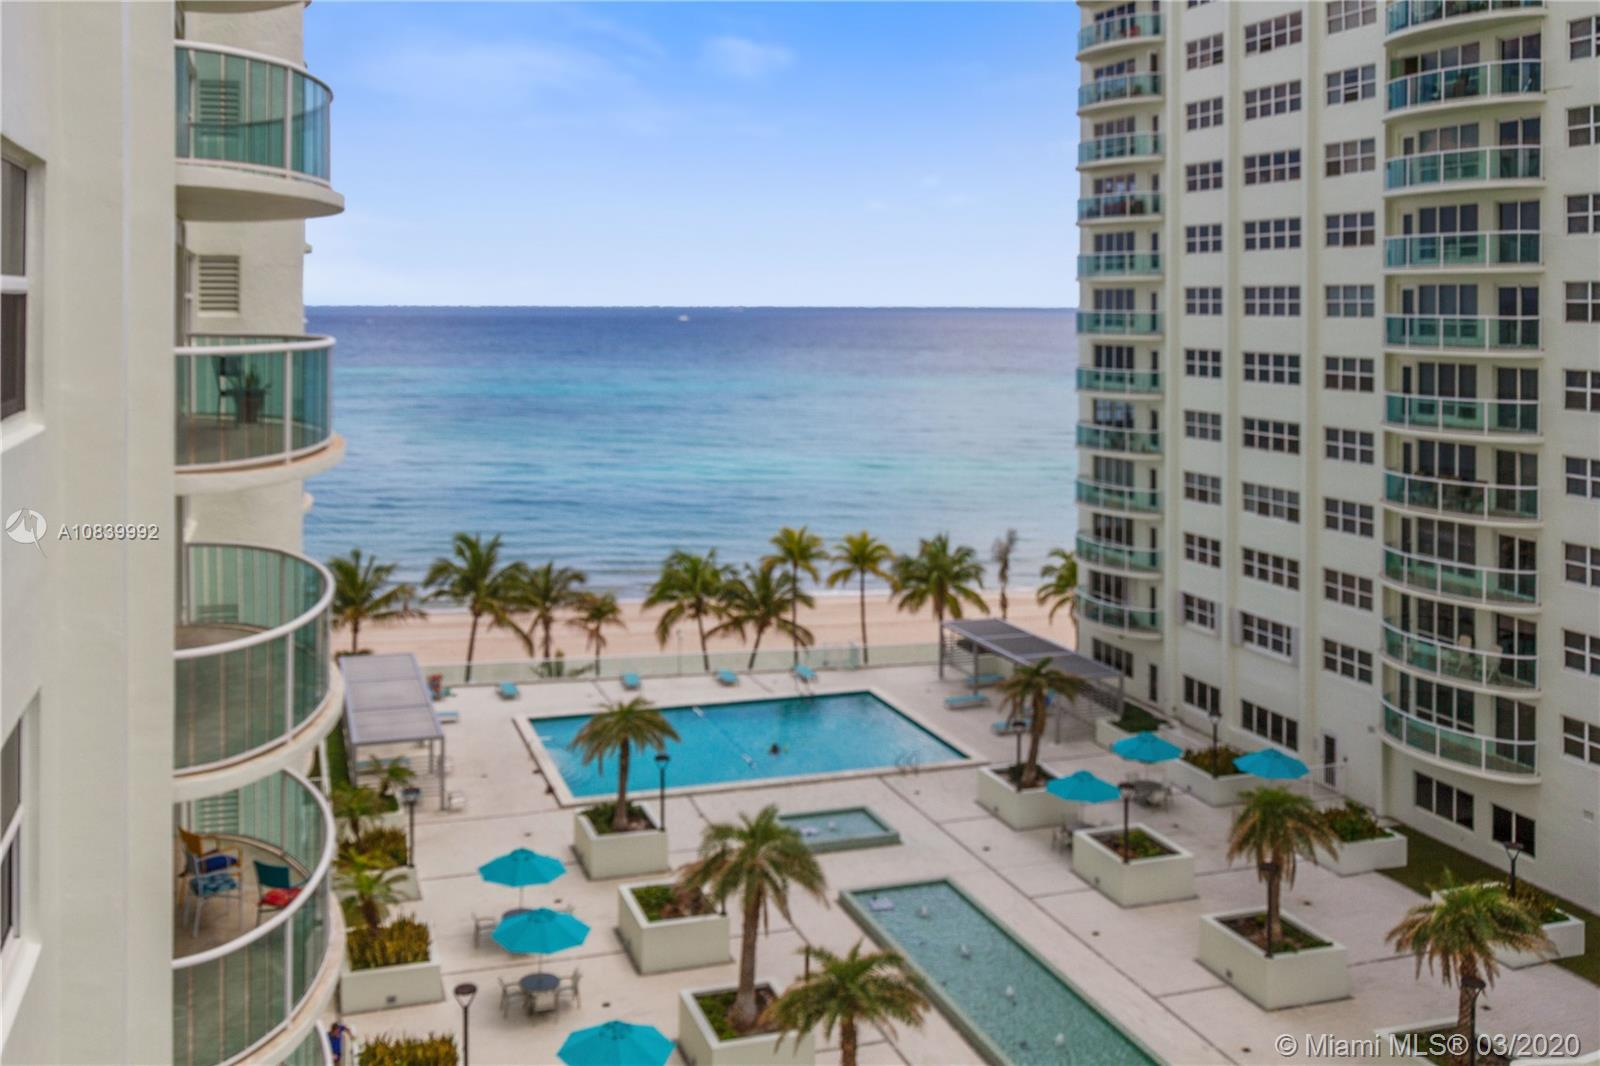 Property for sale at 3410 S Galt Ocean Dr Unit: 710N, Fort Lauderdale,  Florida 33308